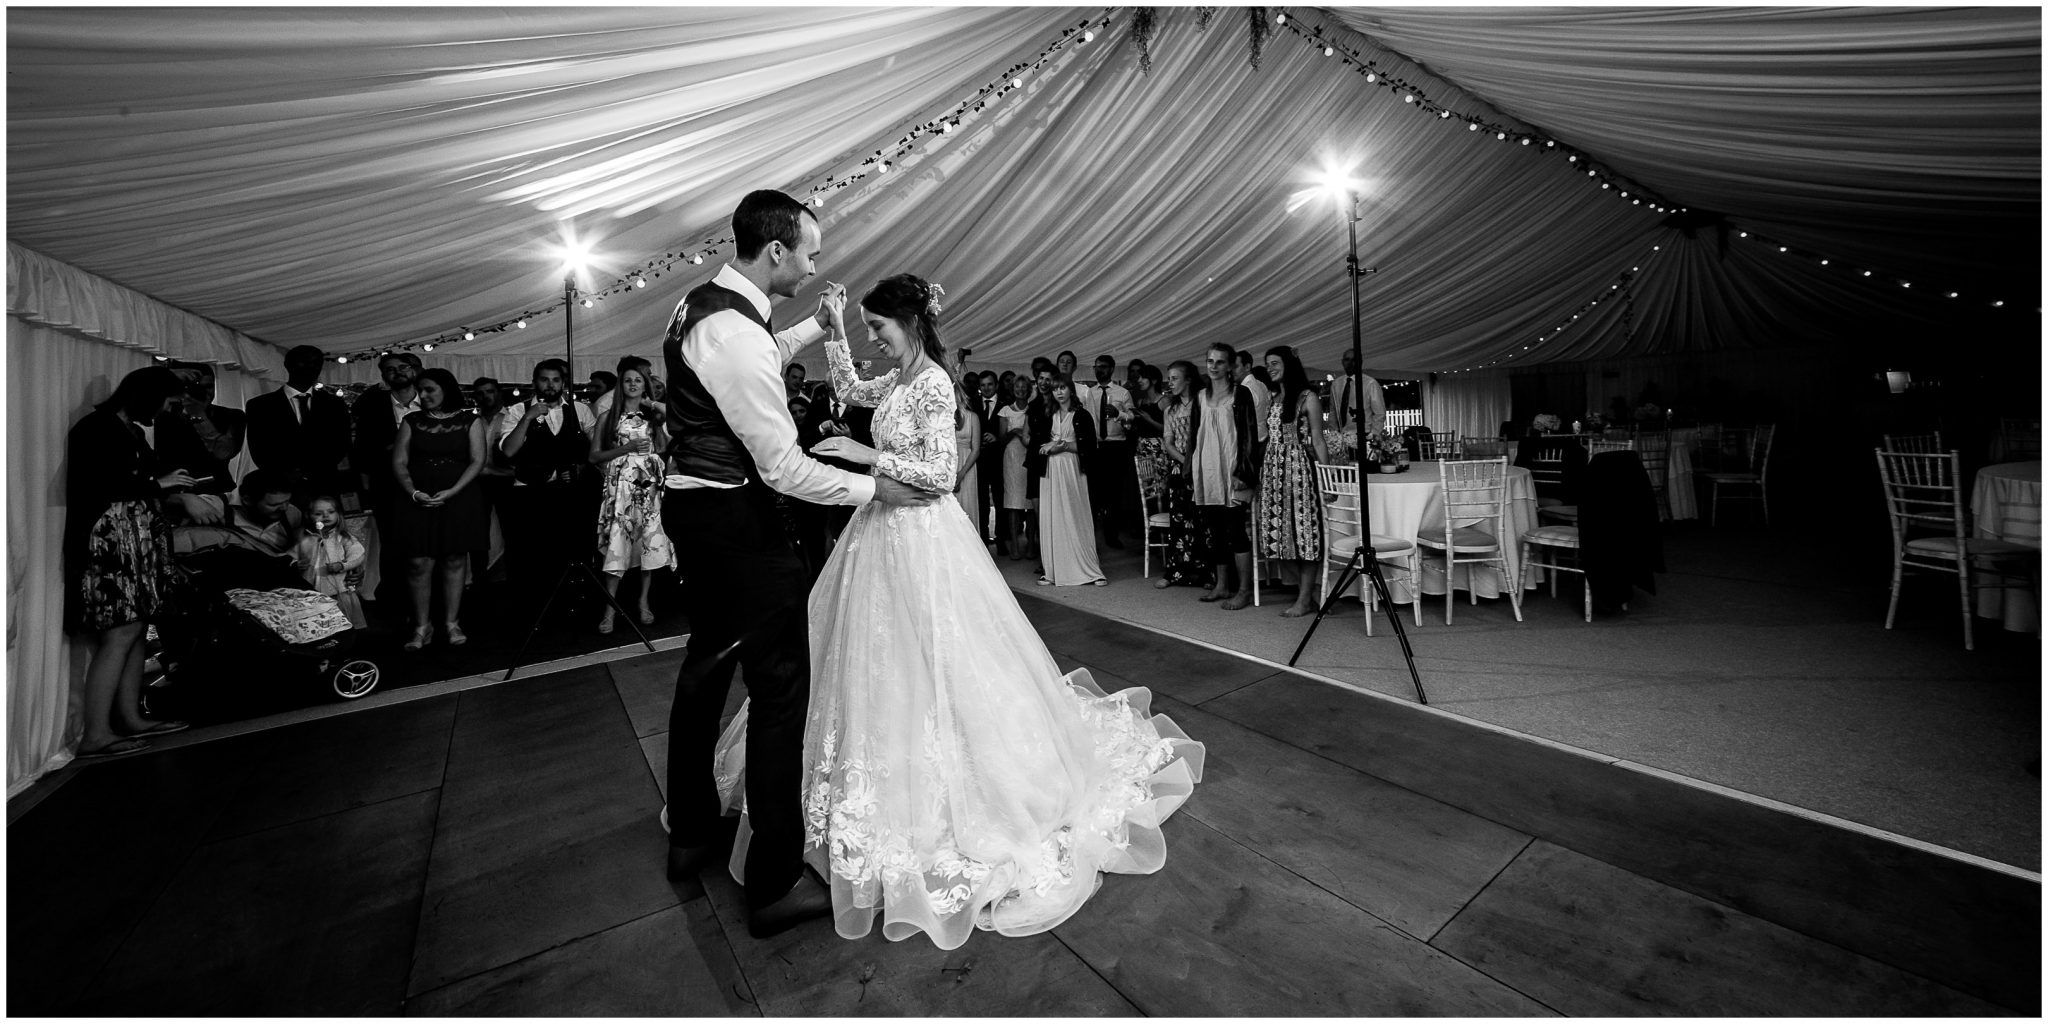 Couple first dance in marquee